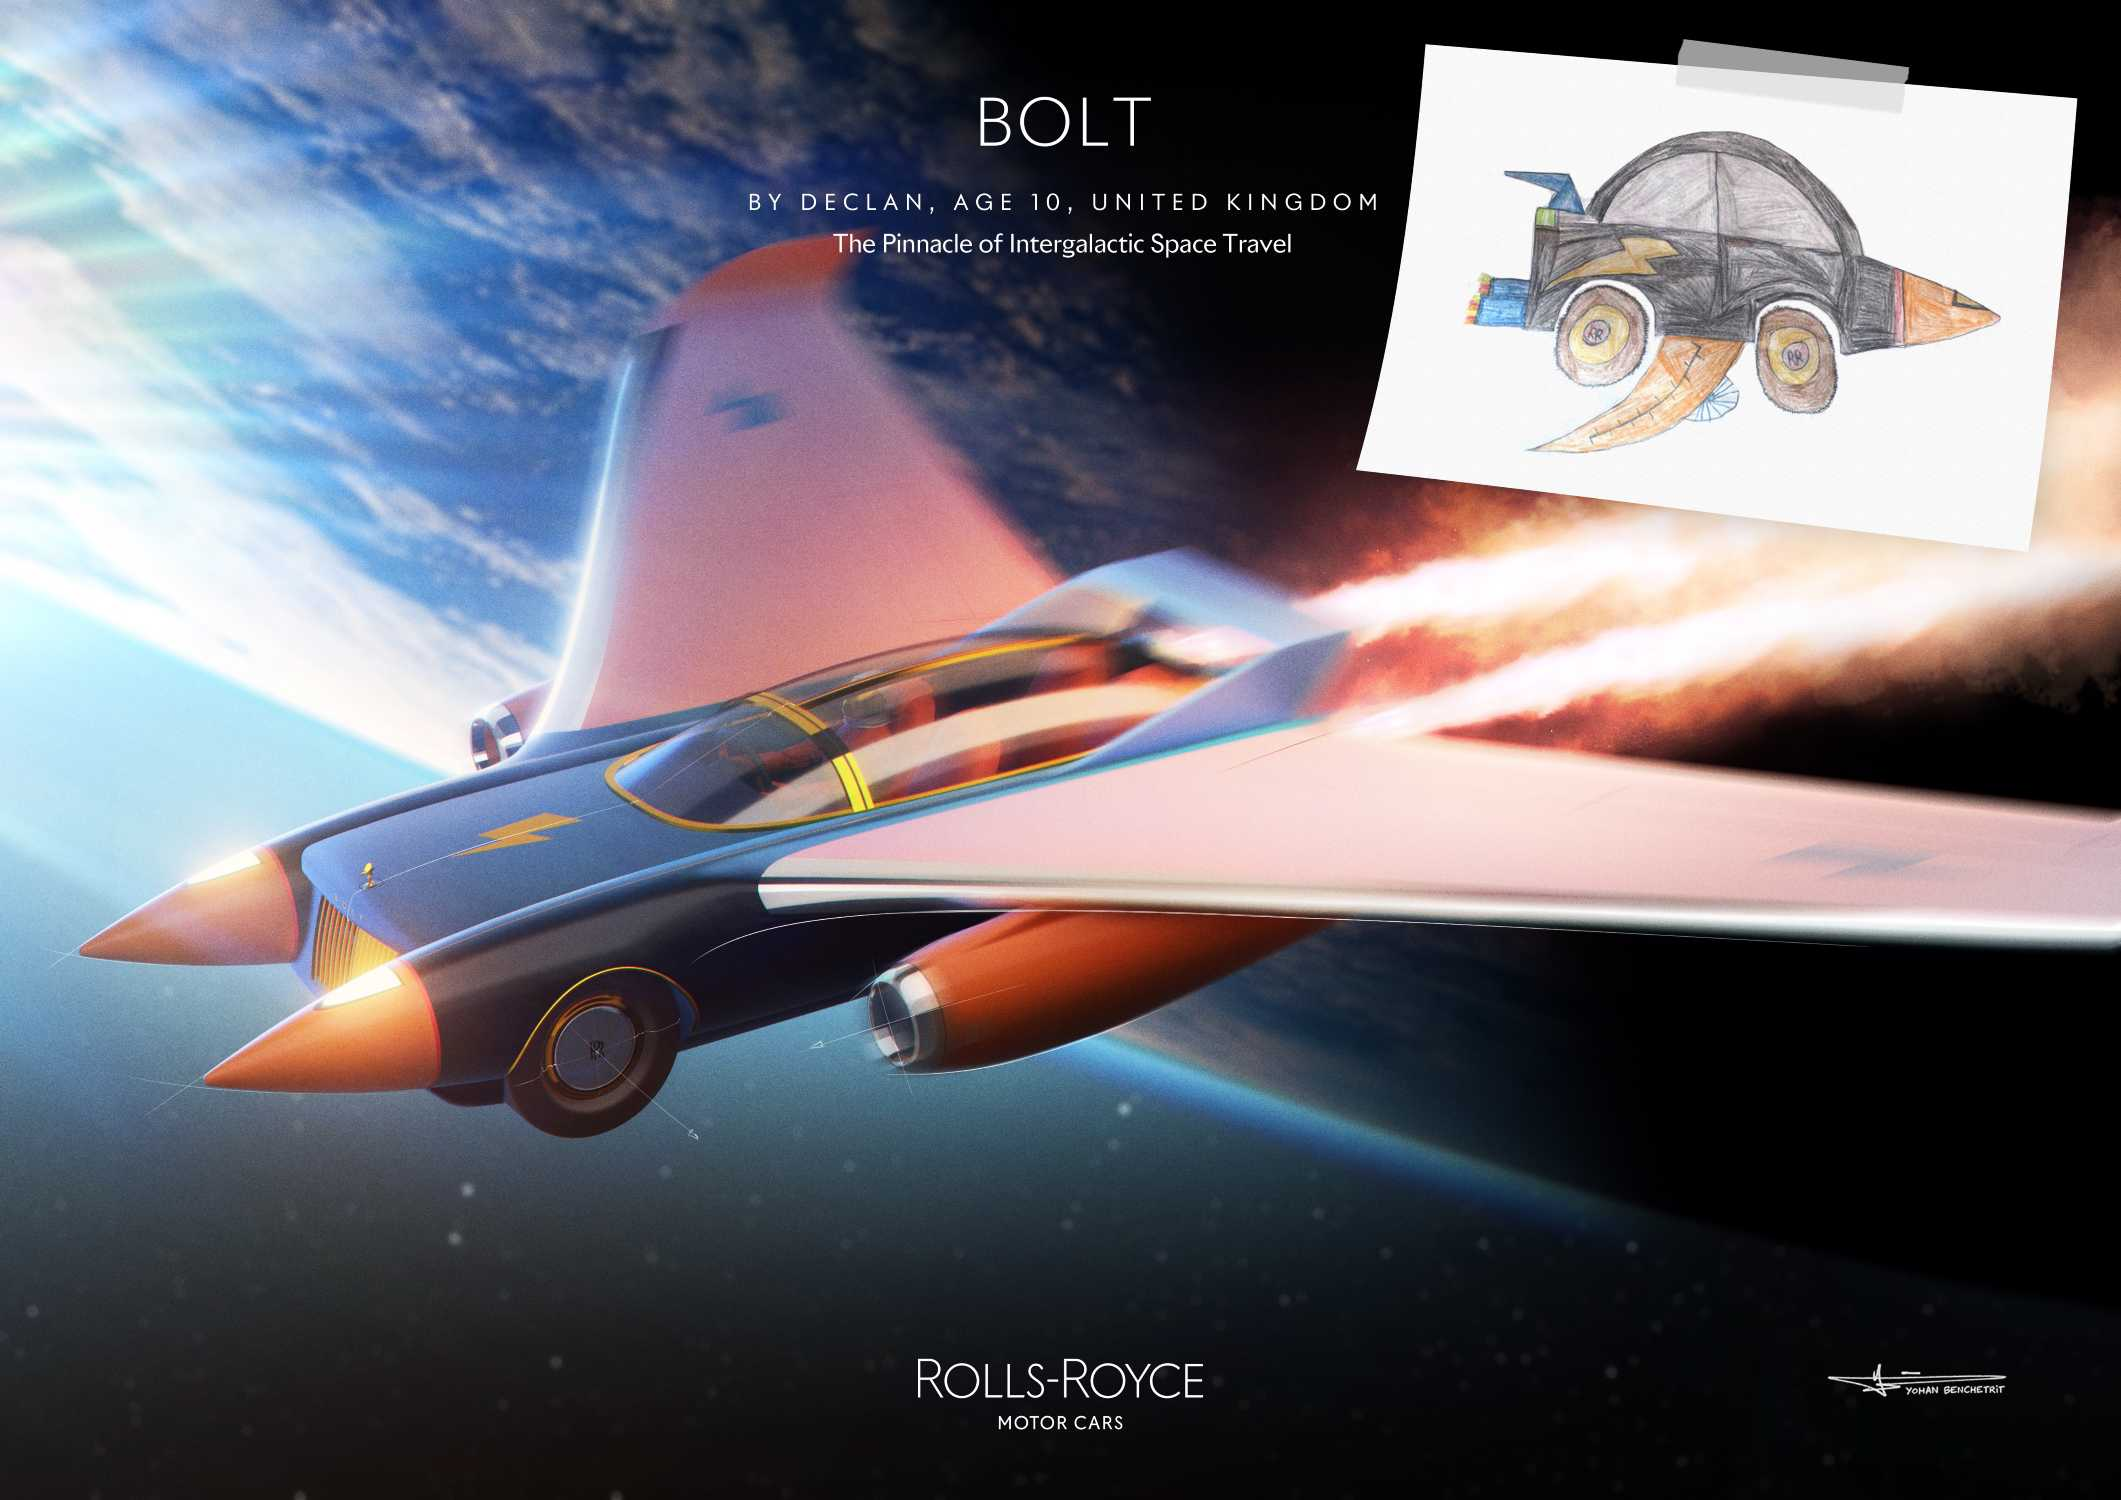 ROLLS-ROYCE BOLT BY DECLAN, AGE 10, UNITED KINGDOM. HIGHLY COMMENDED IN THE ROLLS-ROYCE YOUNG DESIGNER COMPETITION.